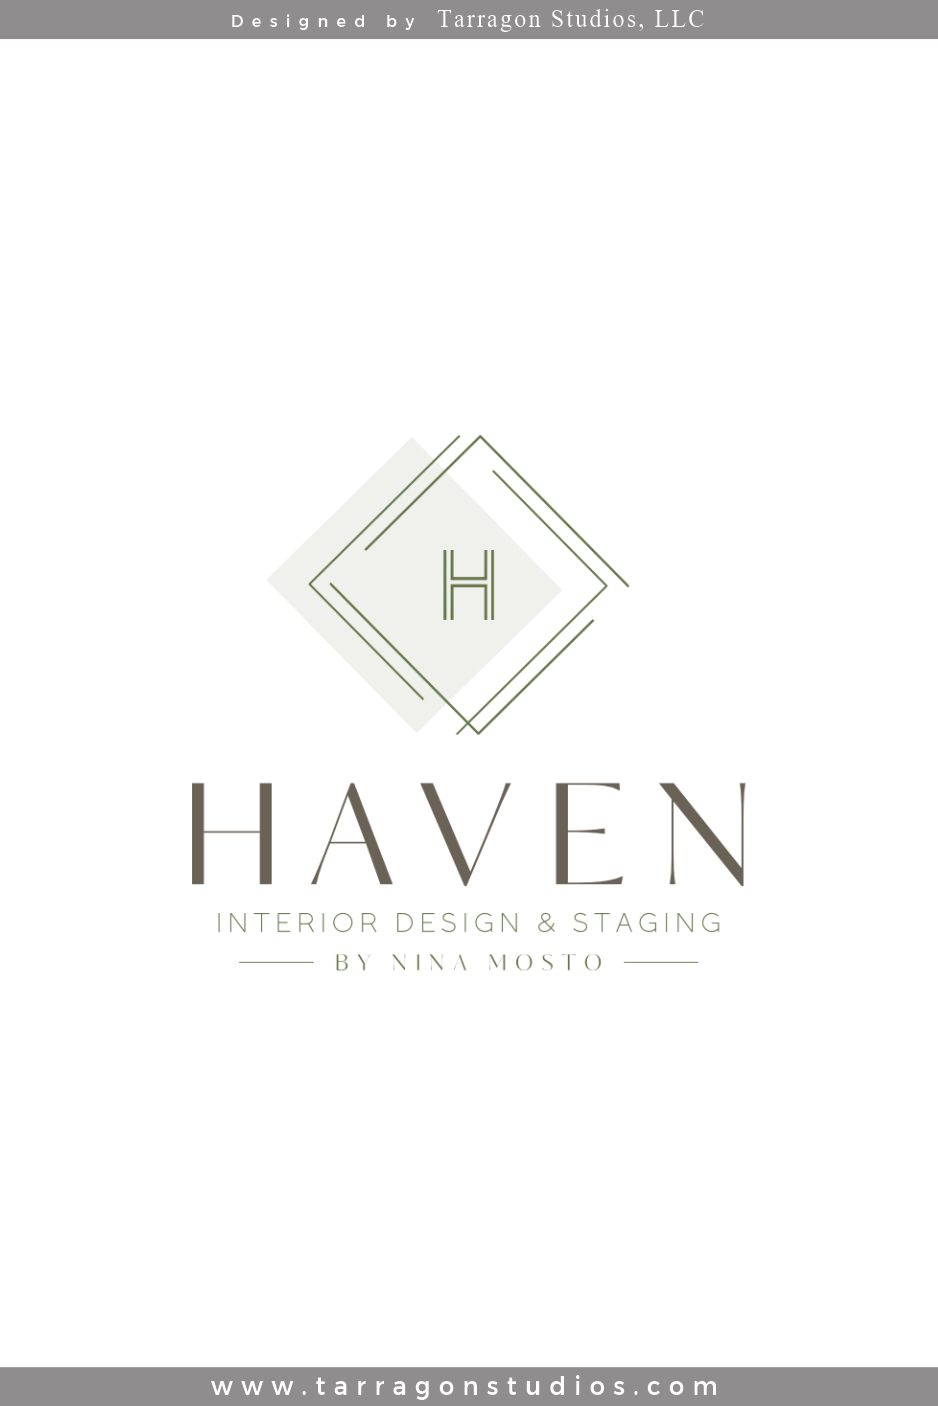 This Chic, stylish logo and brand for Haven Interior Designs & Staging by Nina Mosto, was created by Tarragon Studios. Keep Reading to see all the elegant logo variations! #logo #design #chic #unique